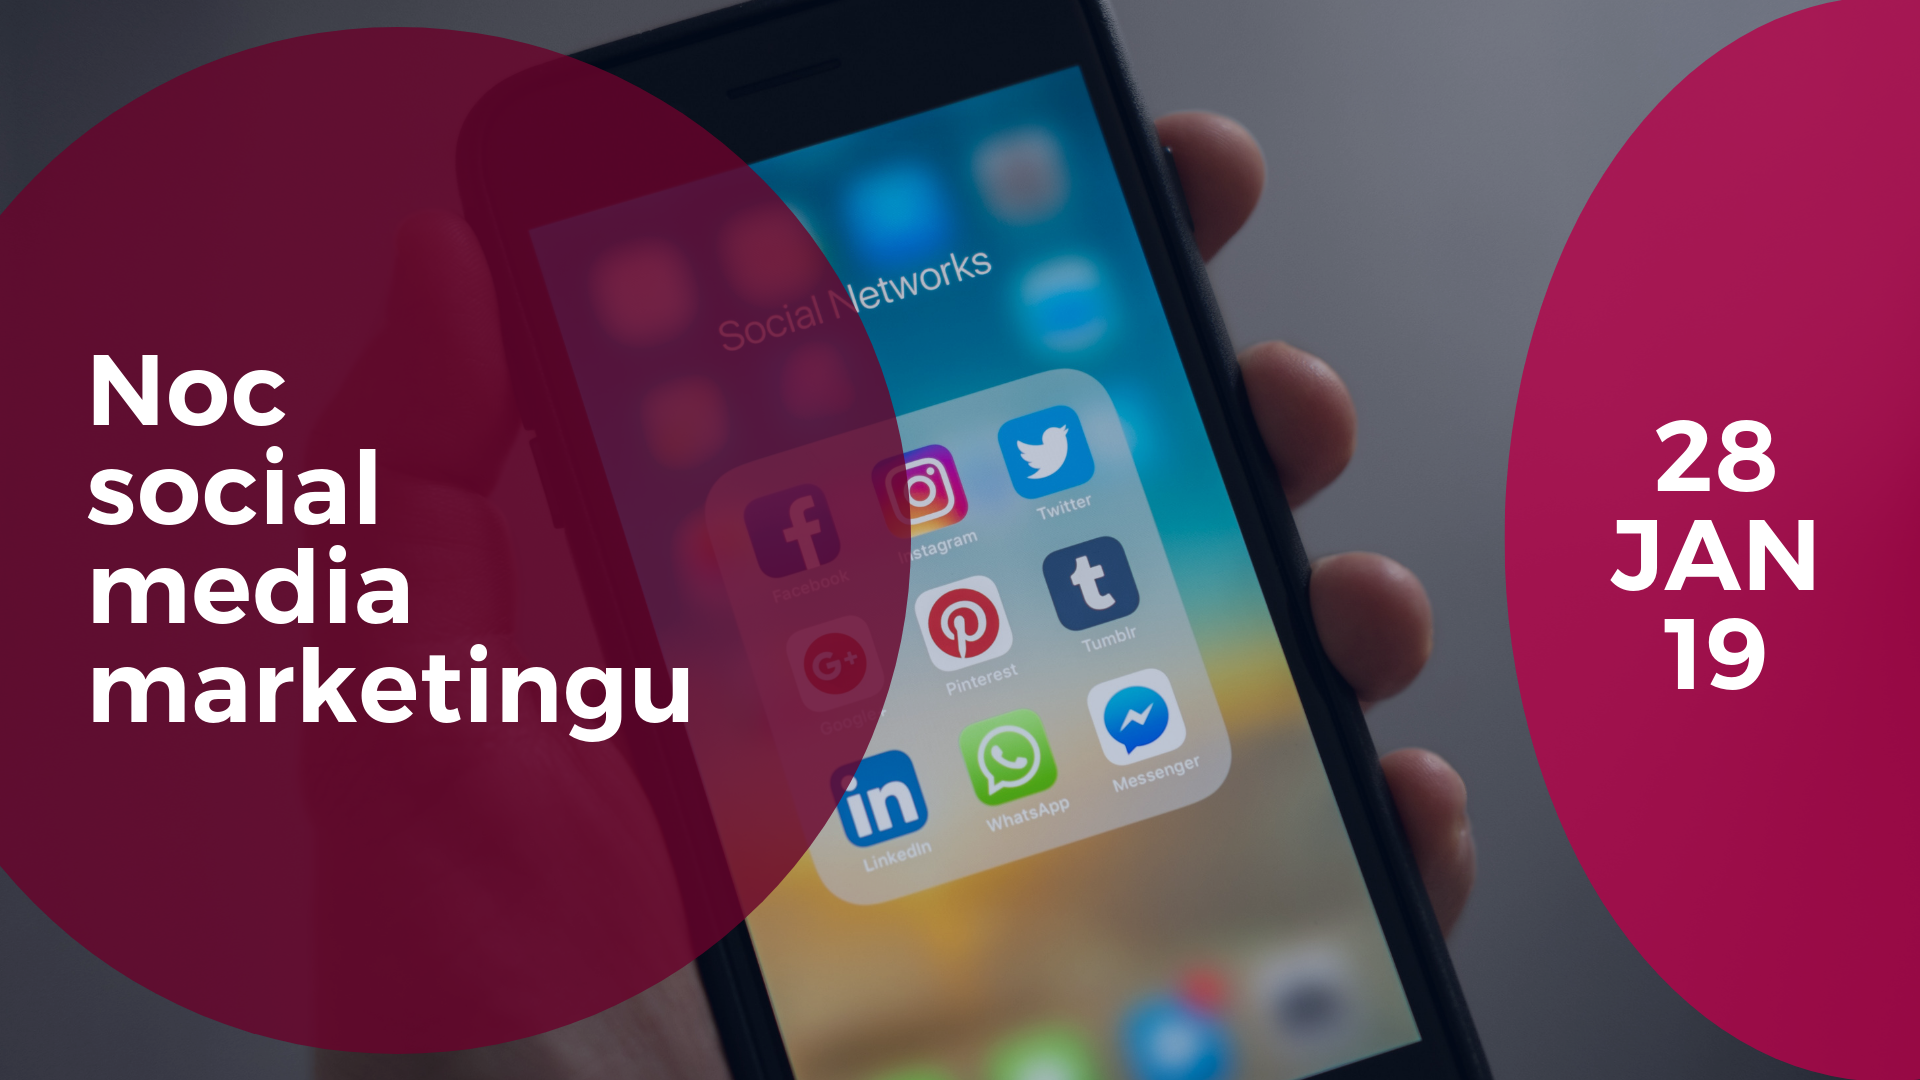 NOC social media marketingu / 28.01.2019